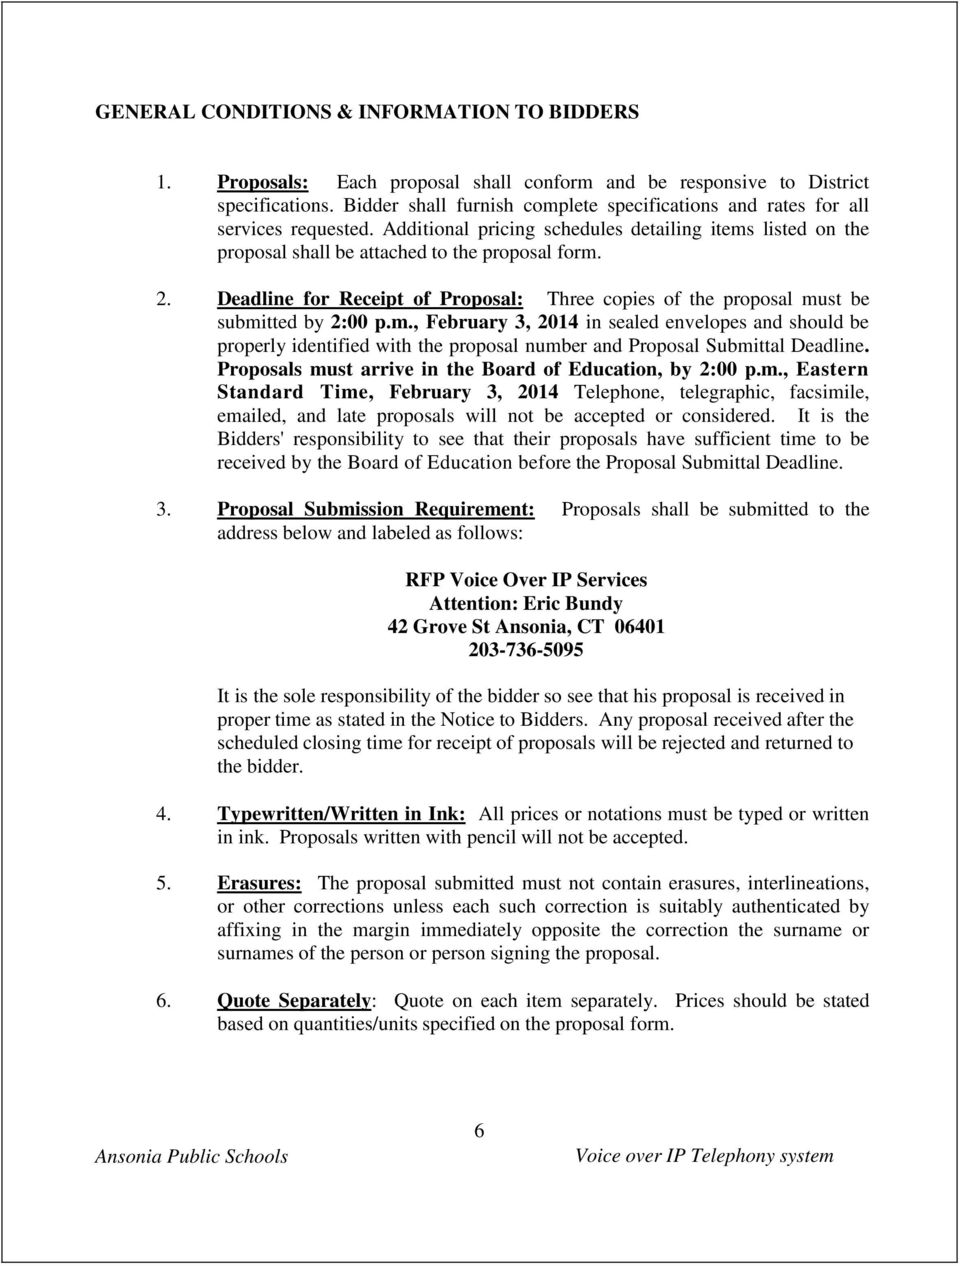 Deadline for Receipt of Proposal: Three copies of the proposal must be submitted by 2:00 p.m., February 3, 2014 in sealed envelopes and should be properly identified with the proposal number and Proposal Submittal Deadline.